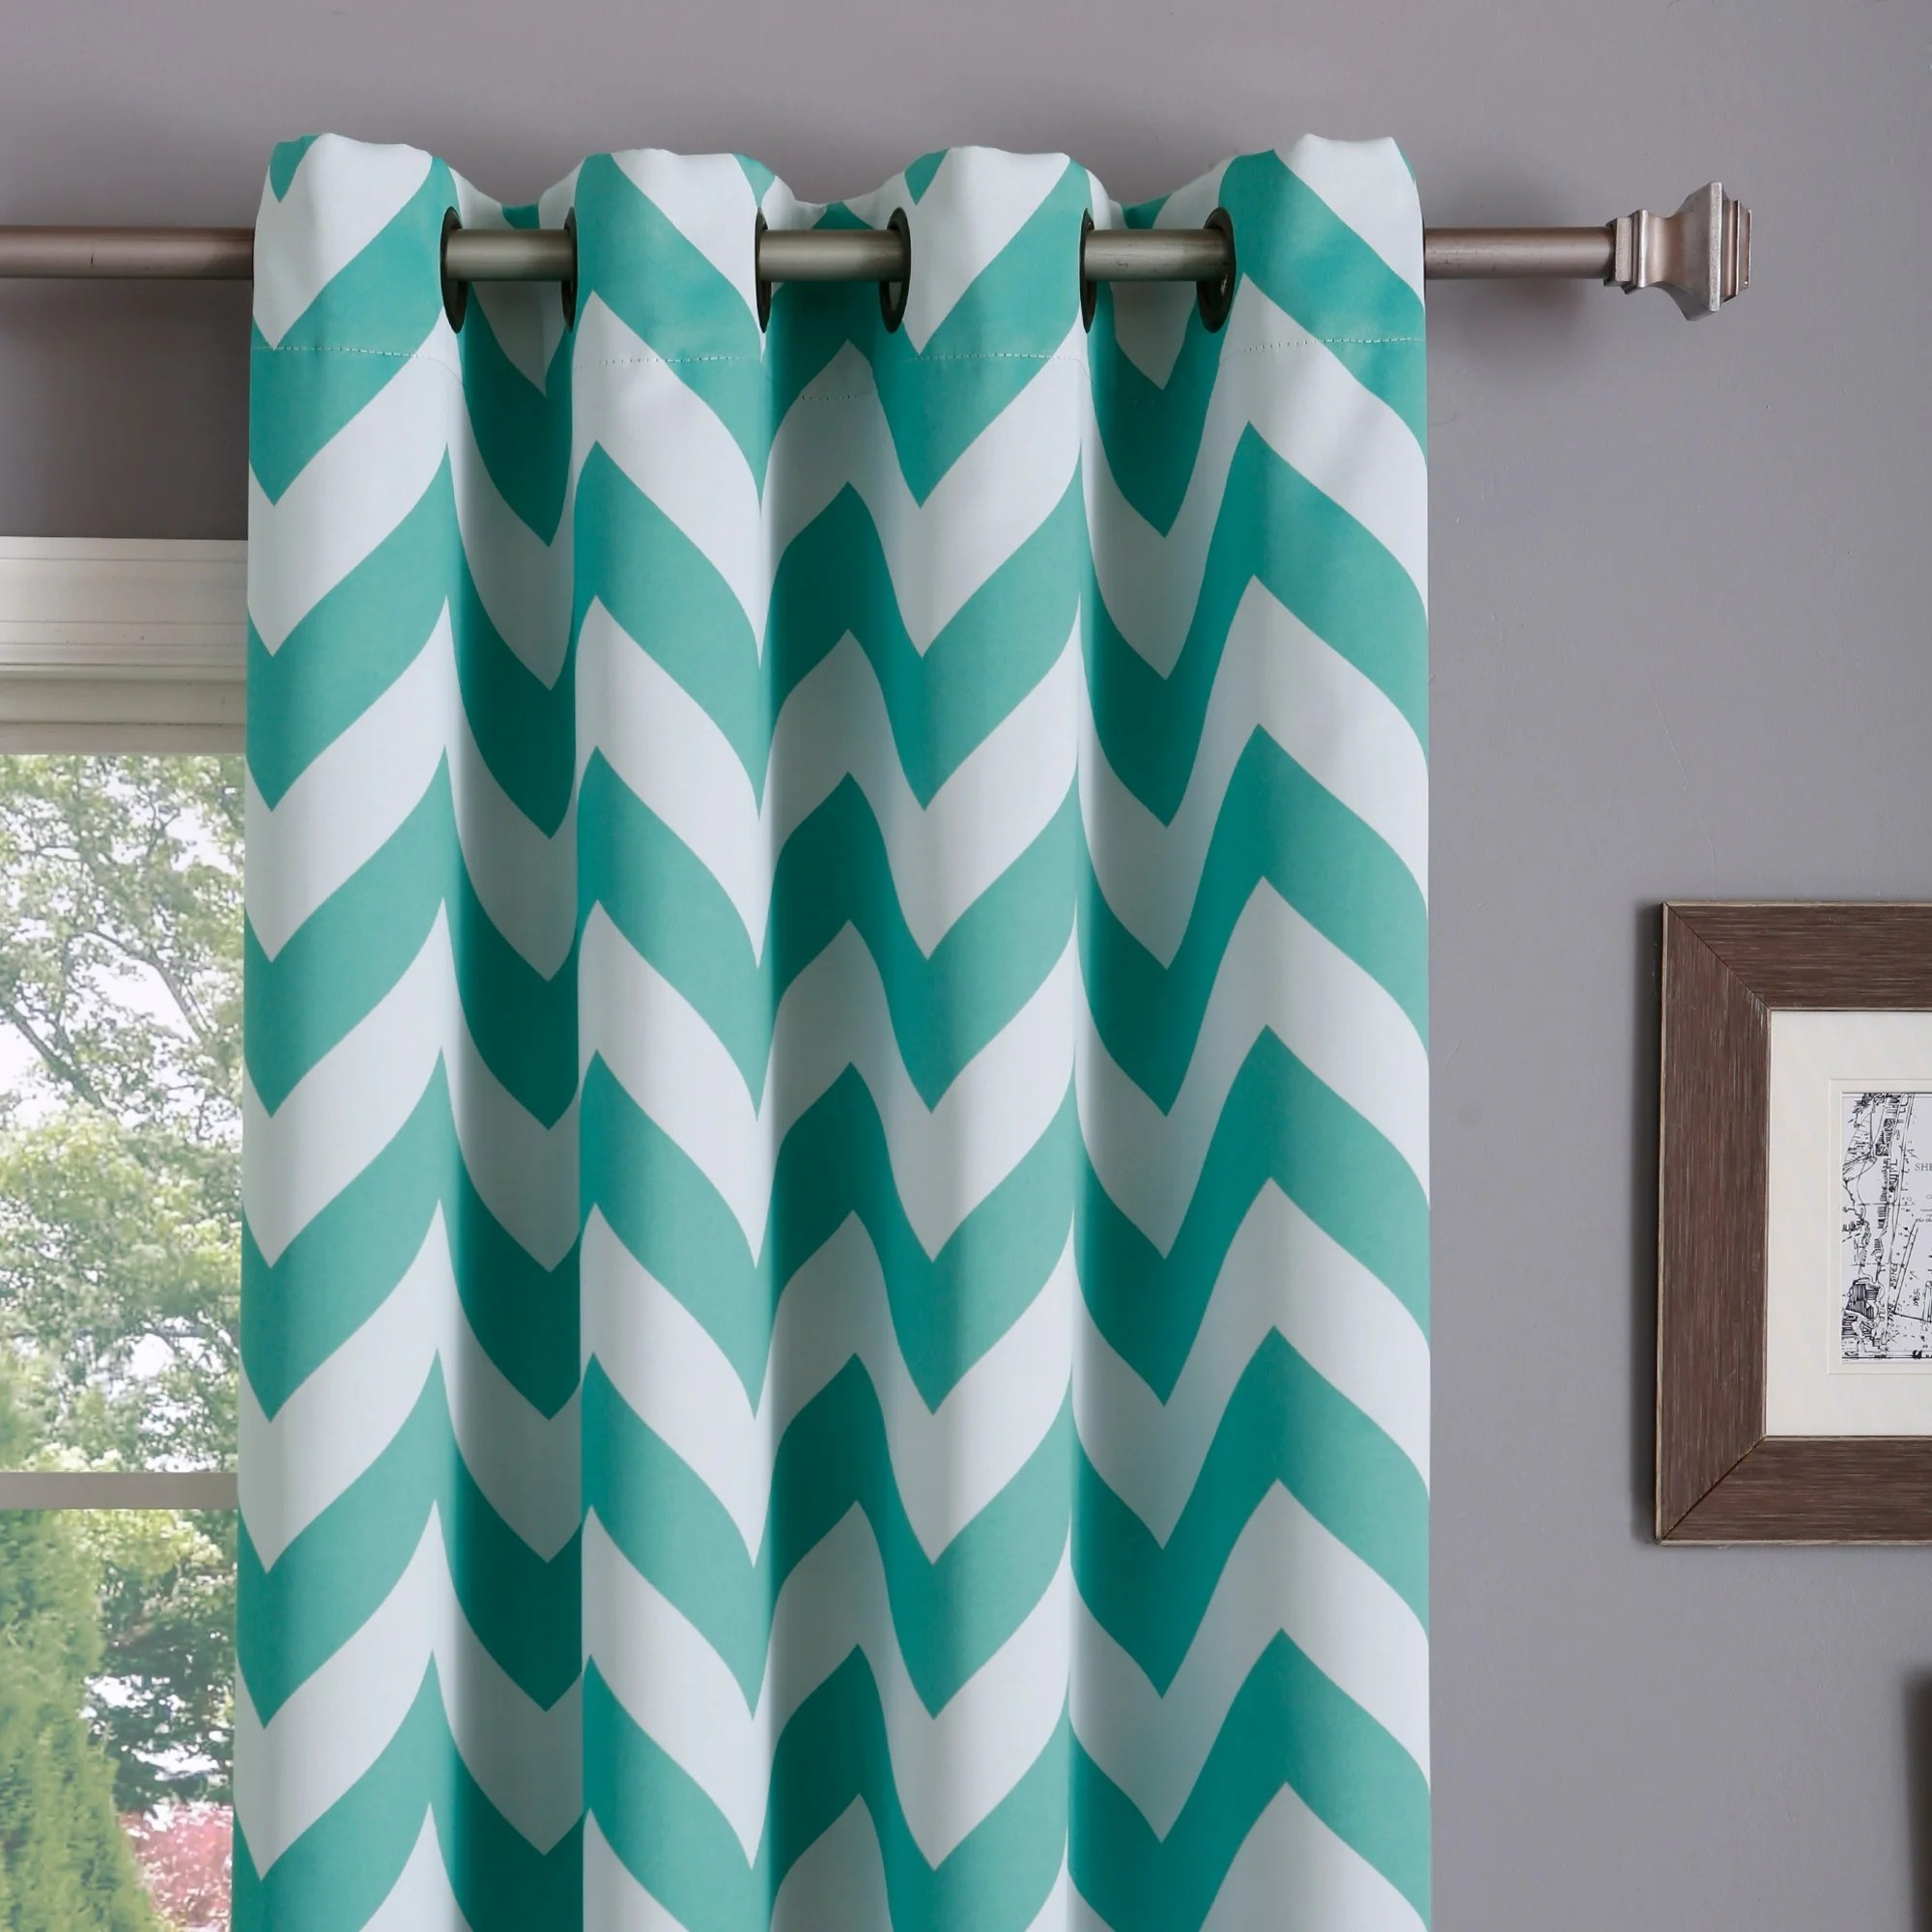 36 Inch Room Darkening Curtains Aurora Home Chevron Print Room Darkening Grommet 96 Inch Curtain Pair